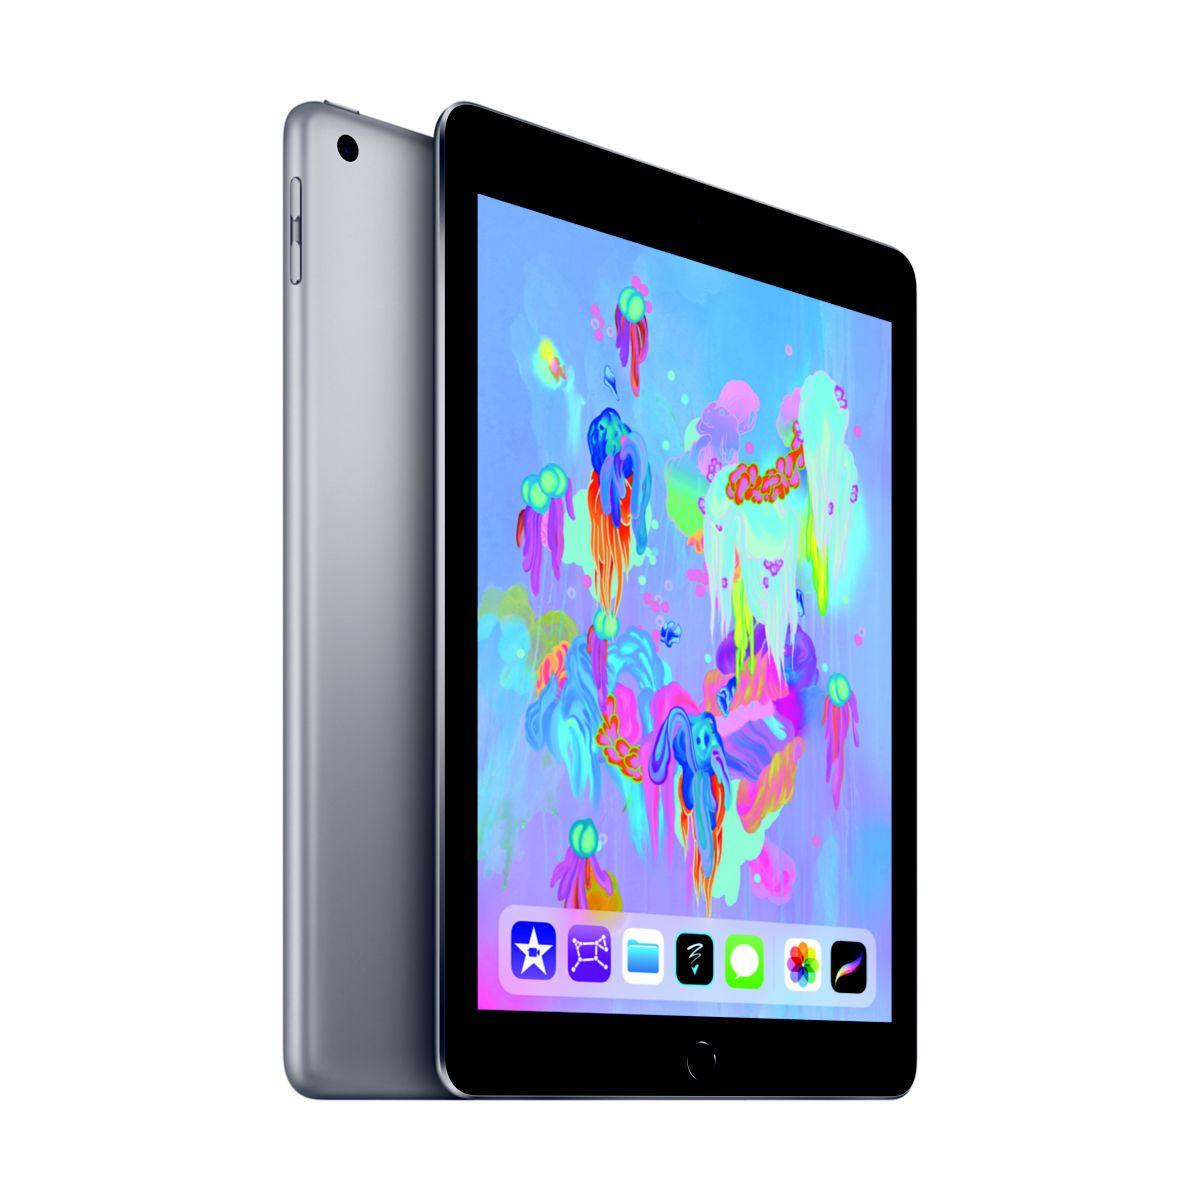 Tablette apple ipad new 128go cell gris sid (photo)